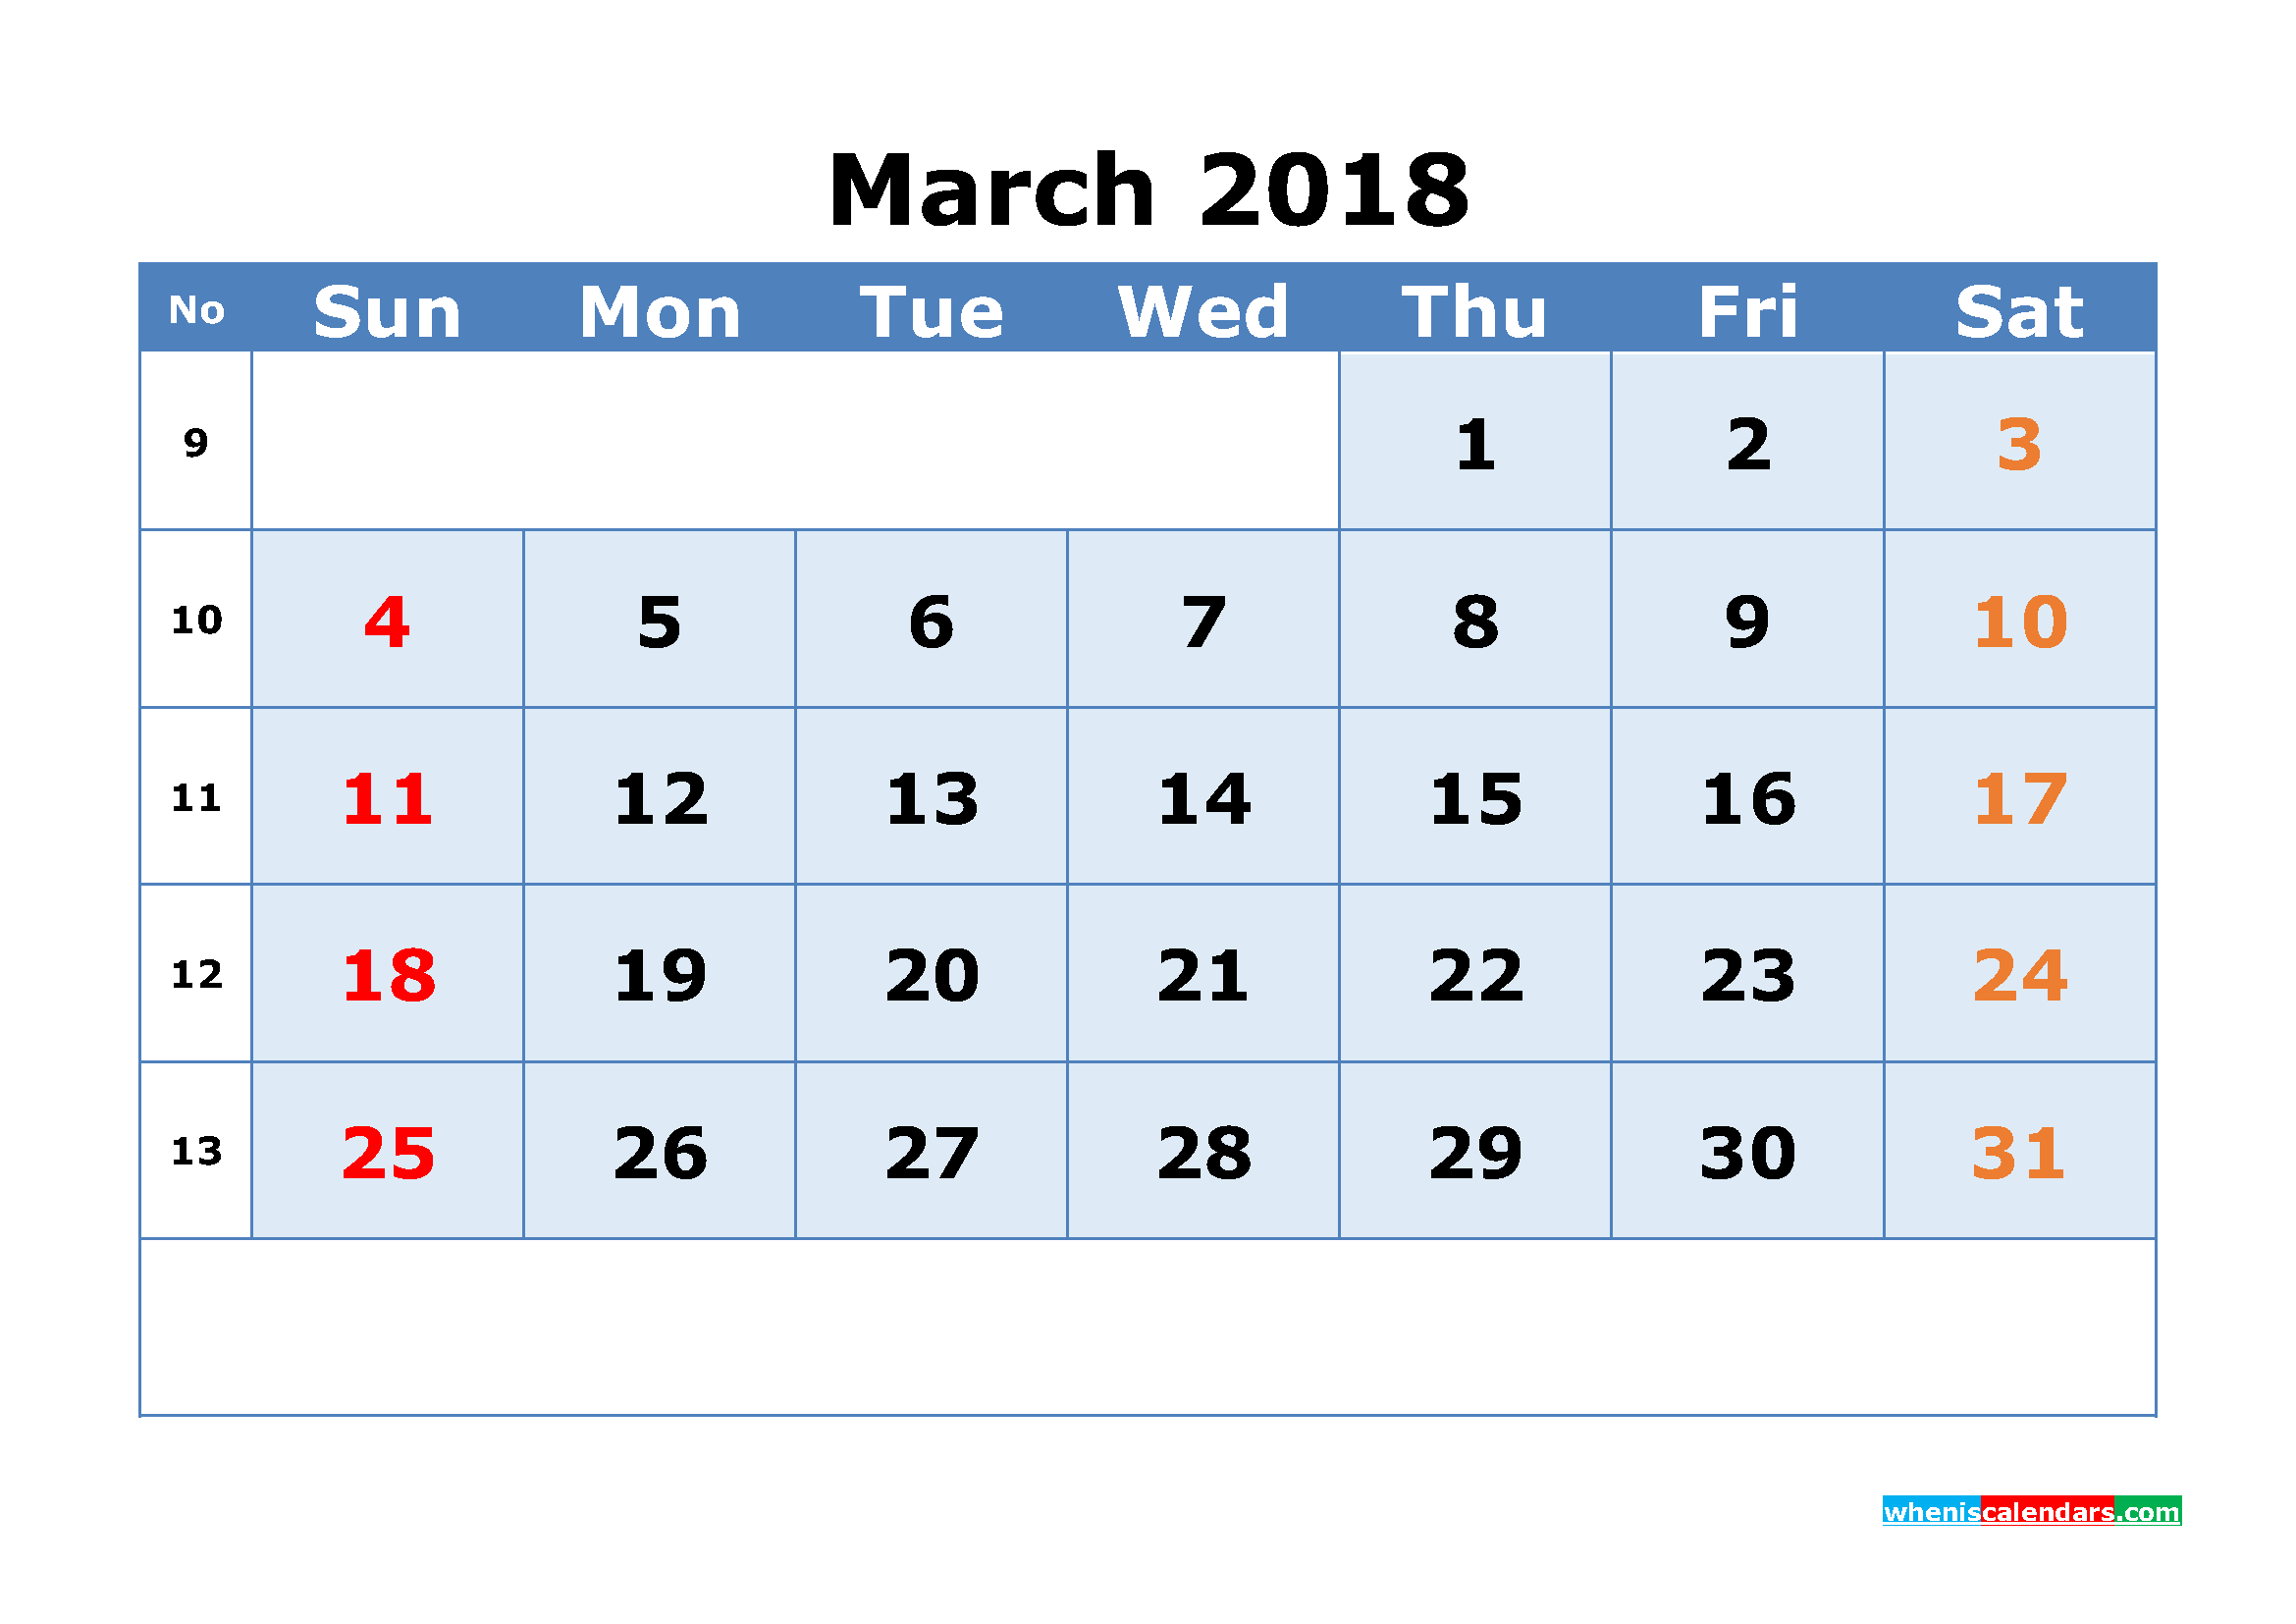 Printable Calendar March 2018 with Week Numbers as, Image